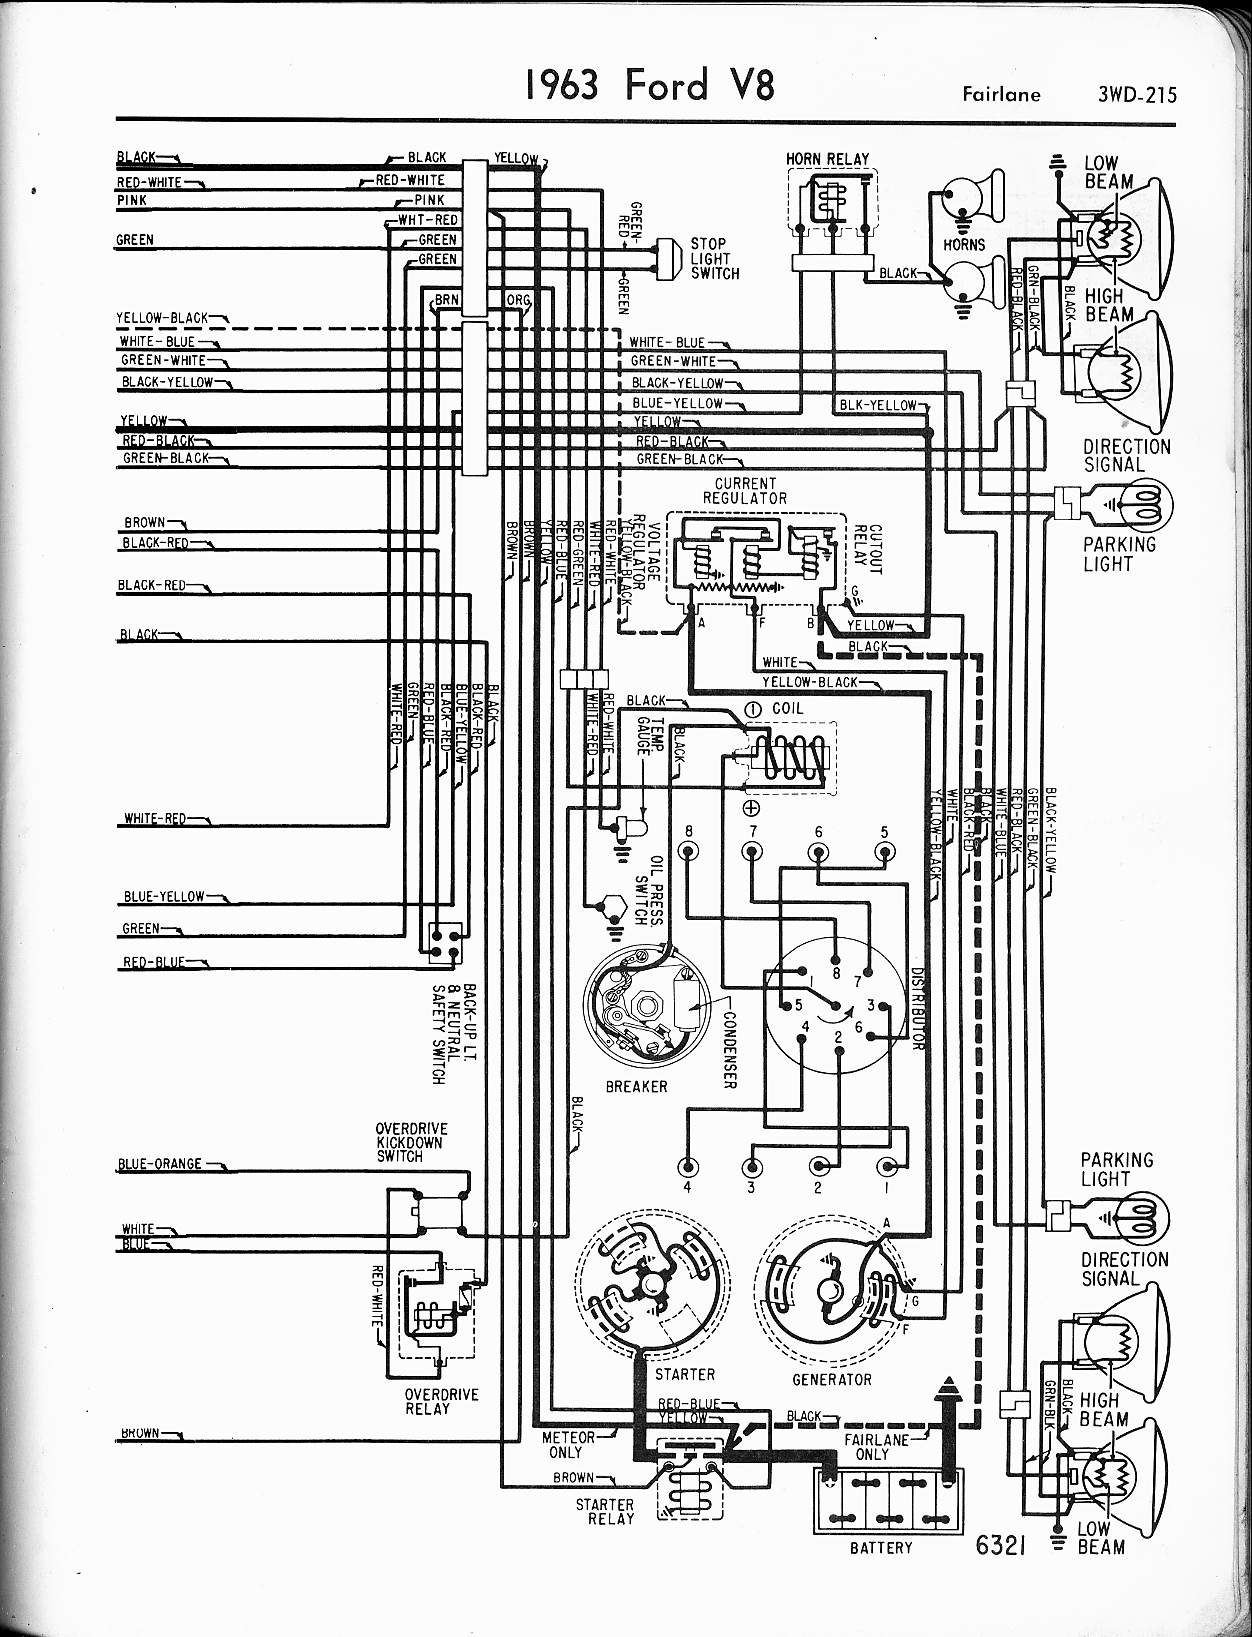 1968 Ford Torino Wiring Diagram Archive Of Automotive 1974 Falcon Detailed Schematics Rh Technograffito Com